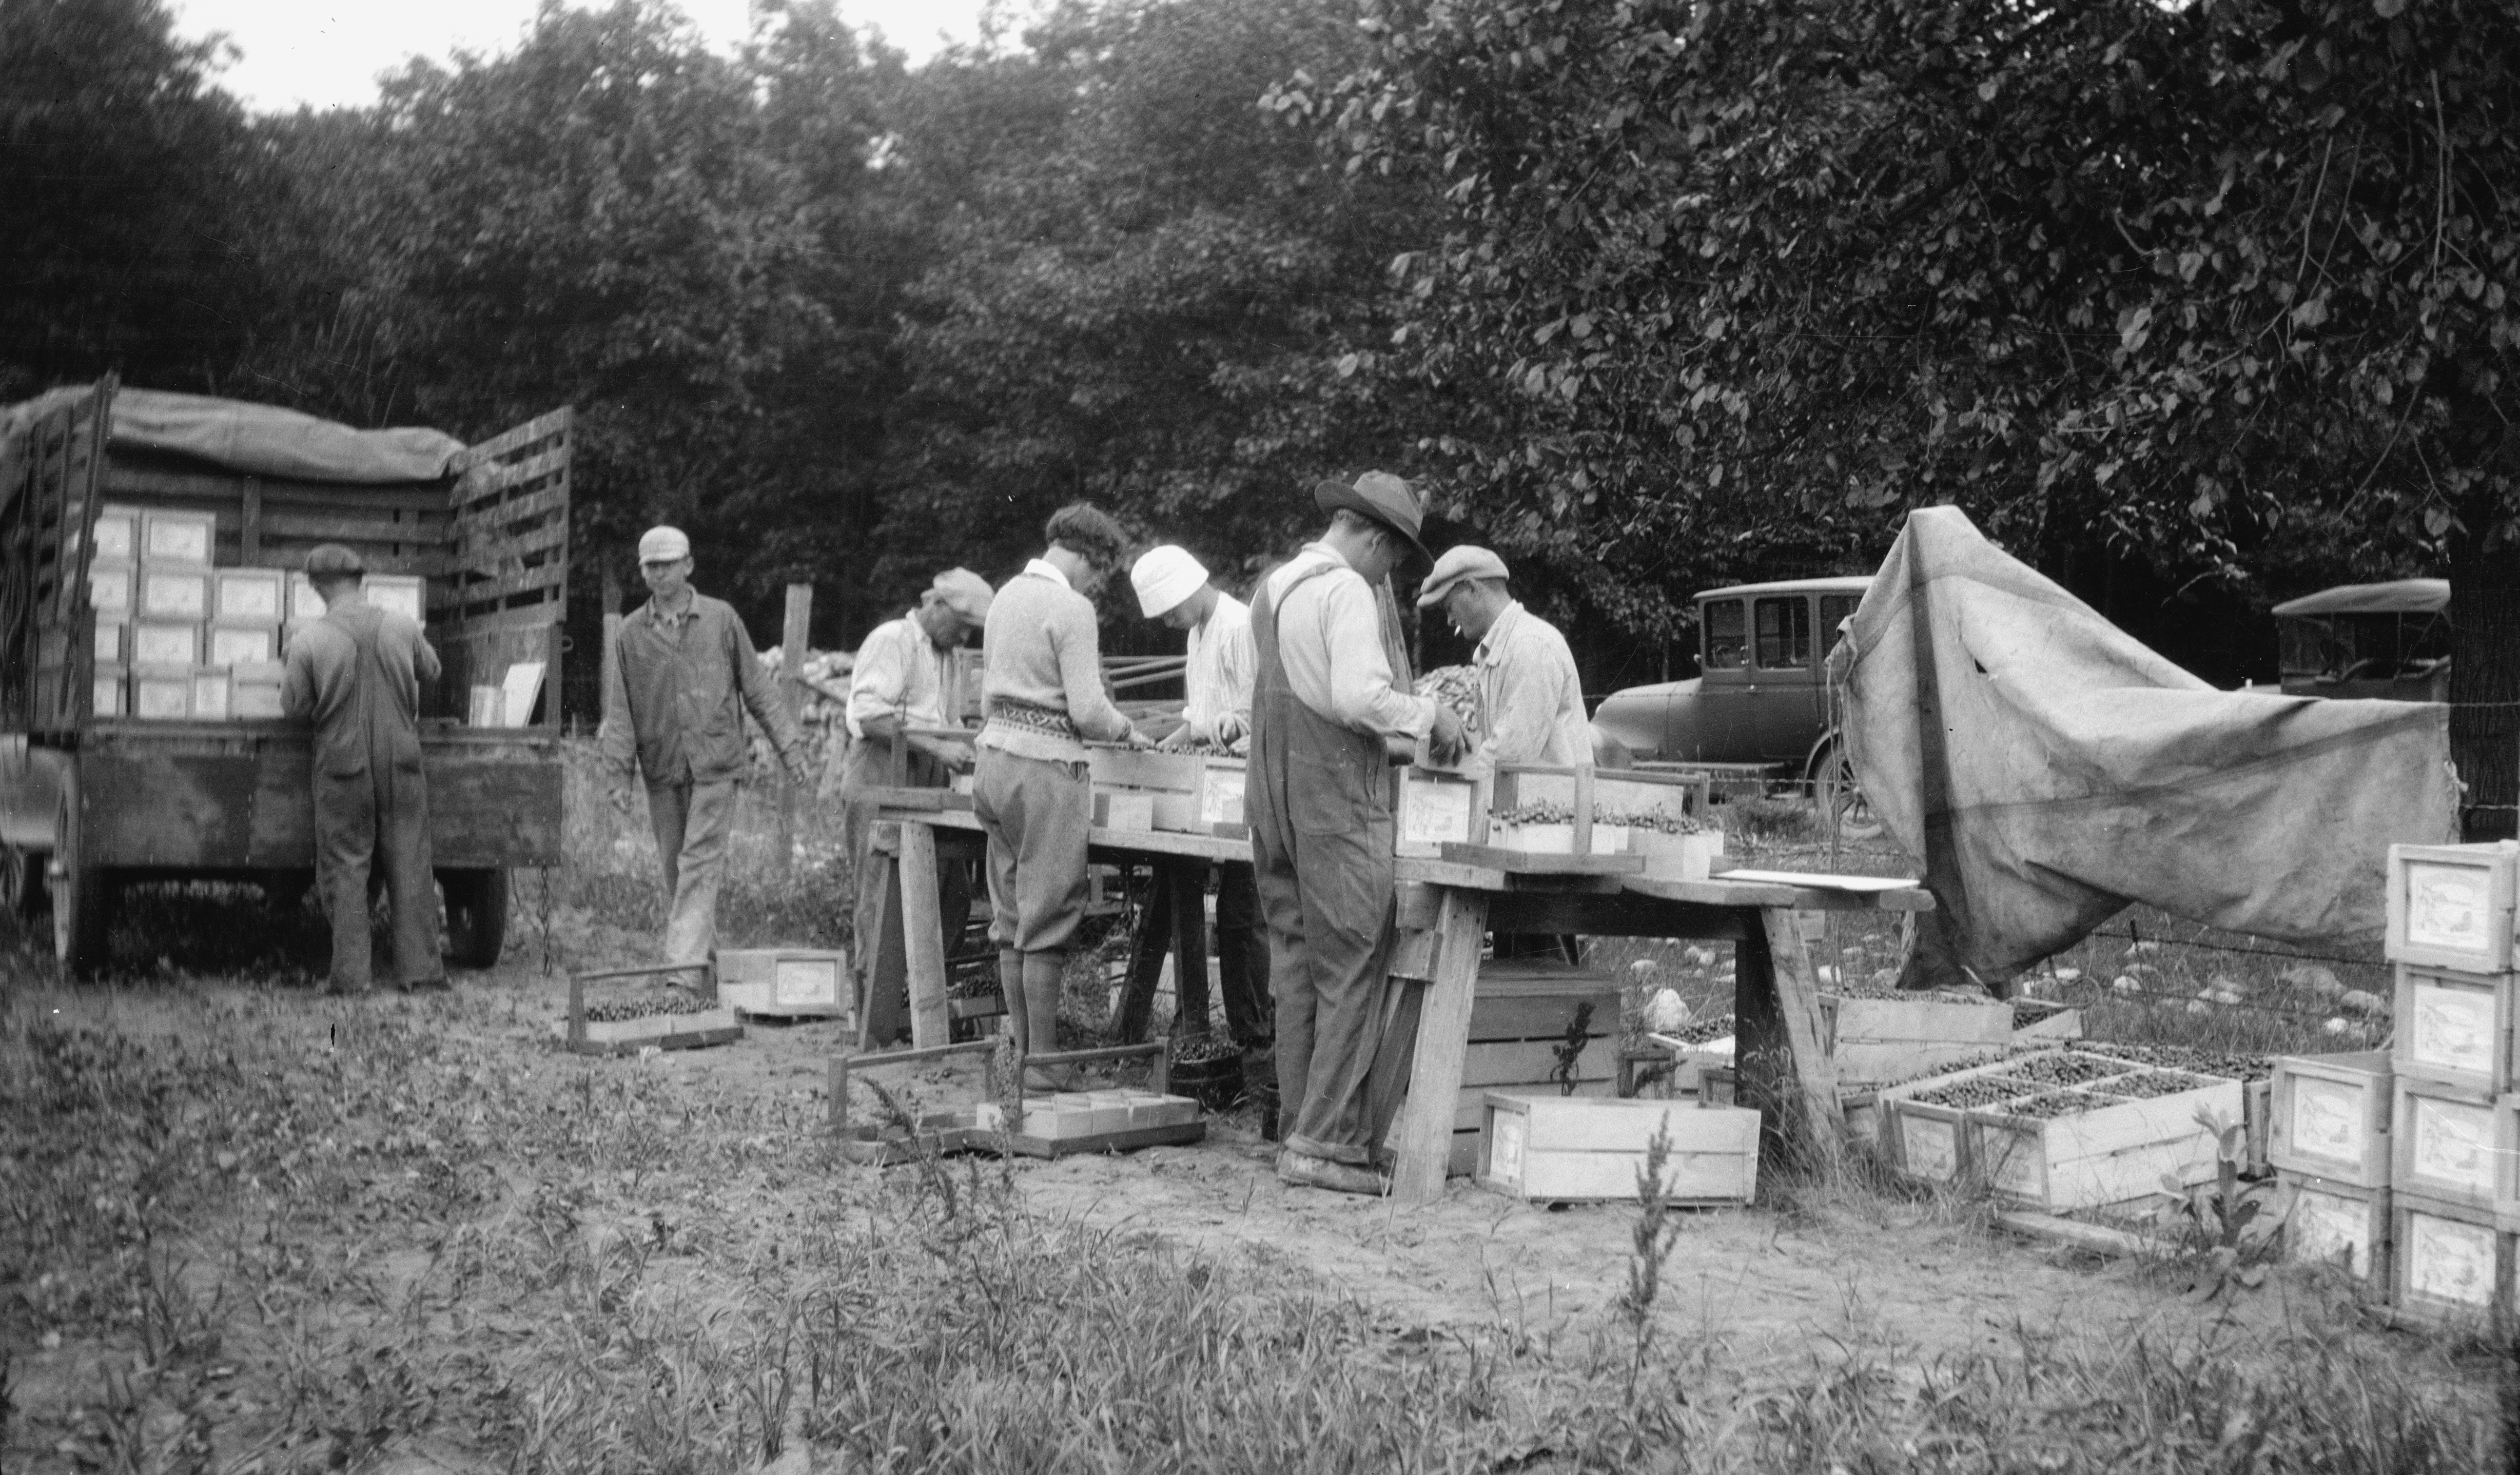 Packing cherries for shipment in 1924. Image courtesy of the Wisconsin Historical Society. Image ID: 93324.